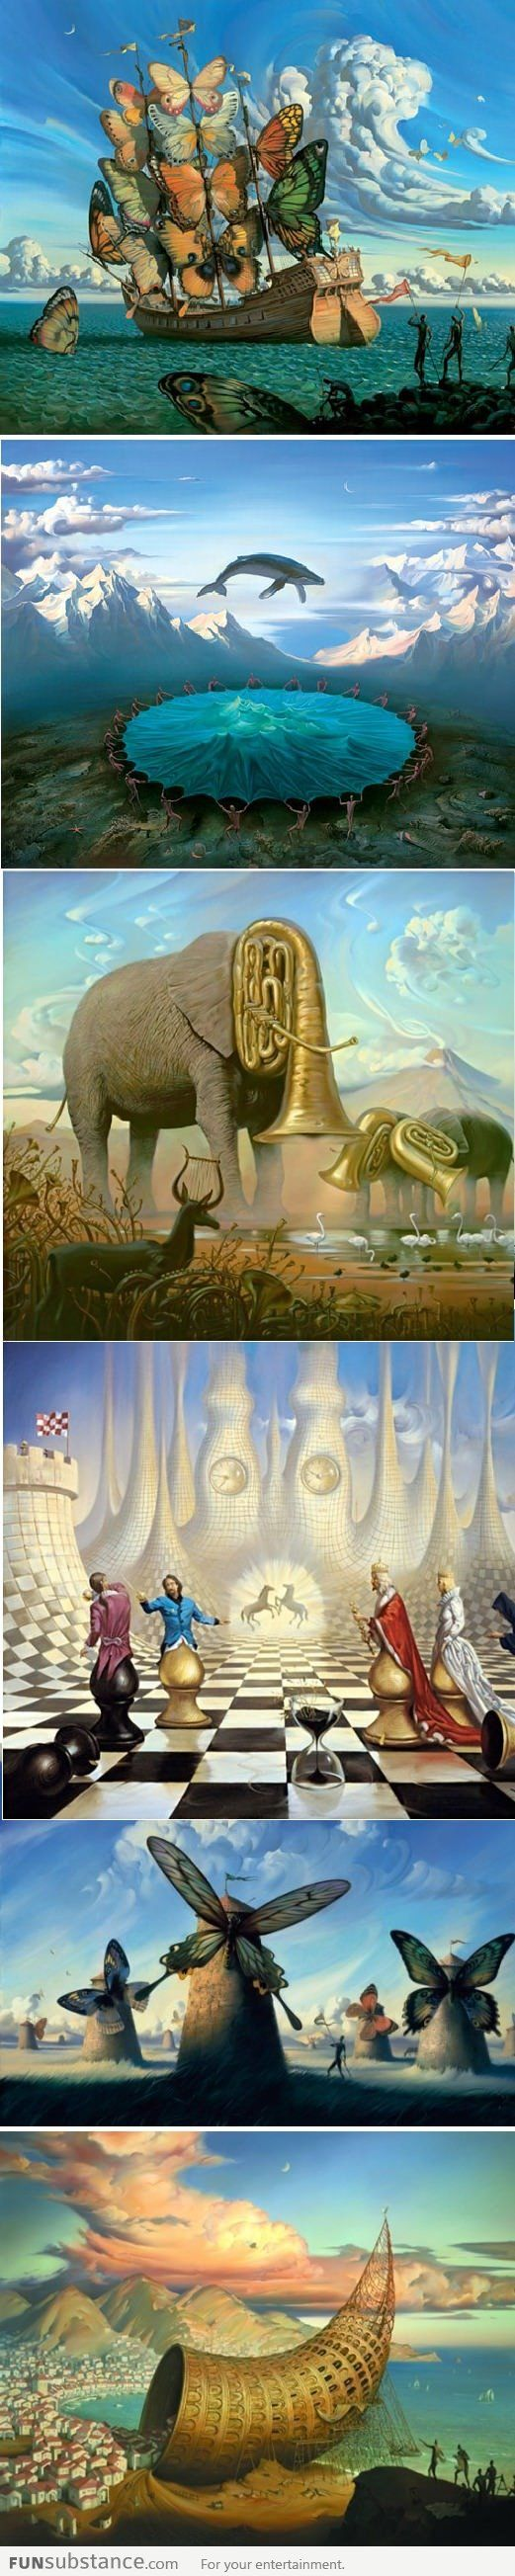 Surrealistic painter: Vladimir Kush, one of my favorite contemporary artists, he reminds me of Dali, whose work was a tremendous inspiration to me.